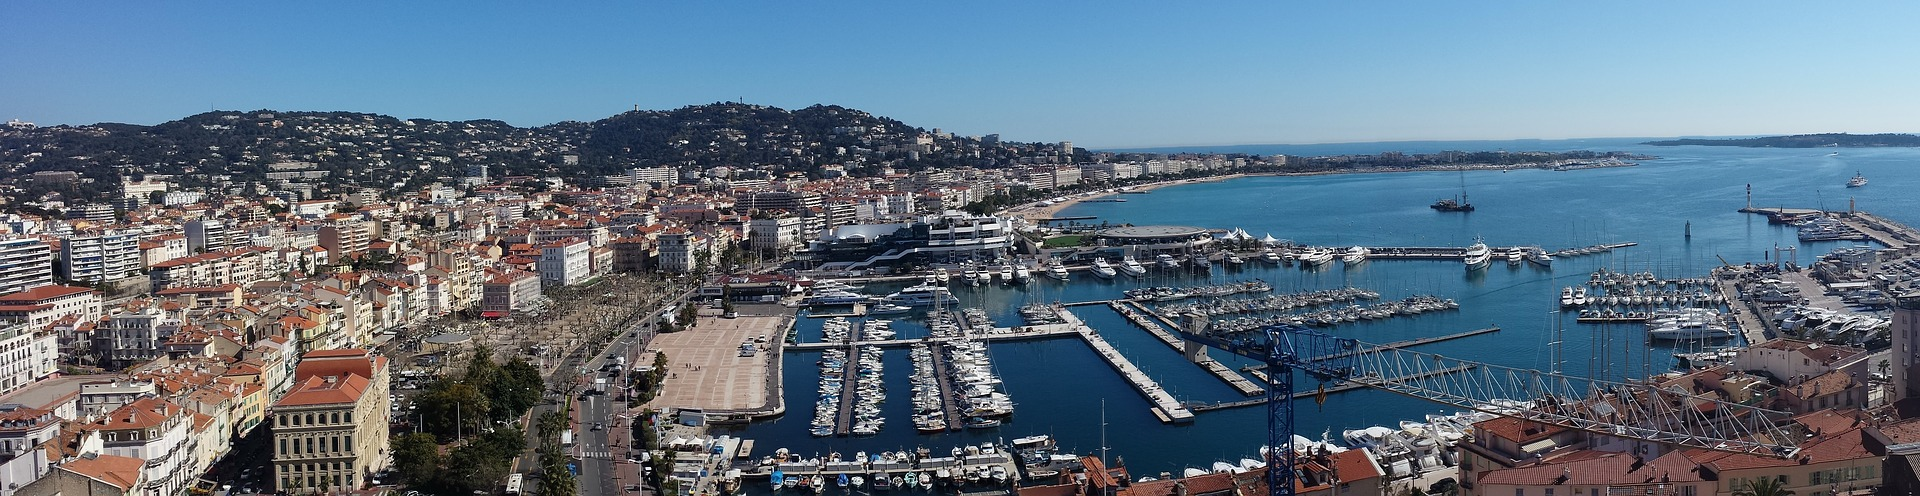 Cannes & the French Riviera